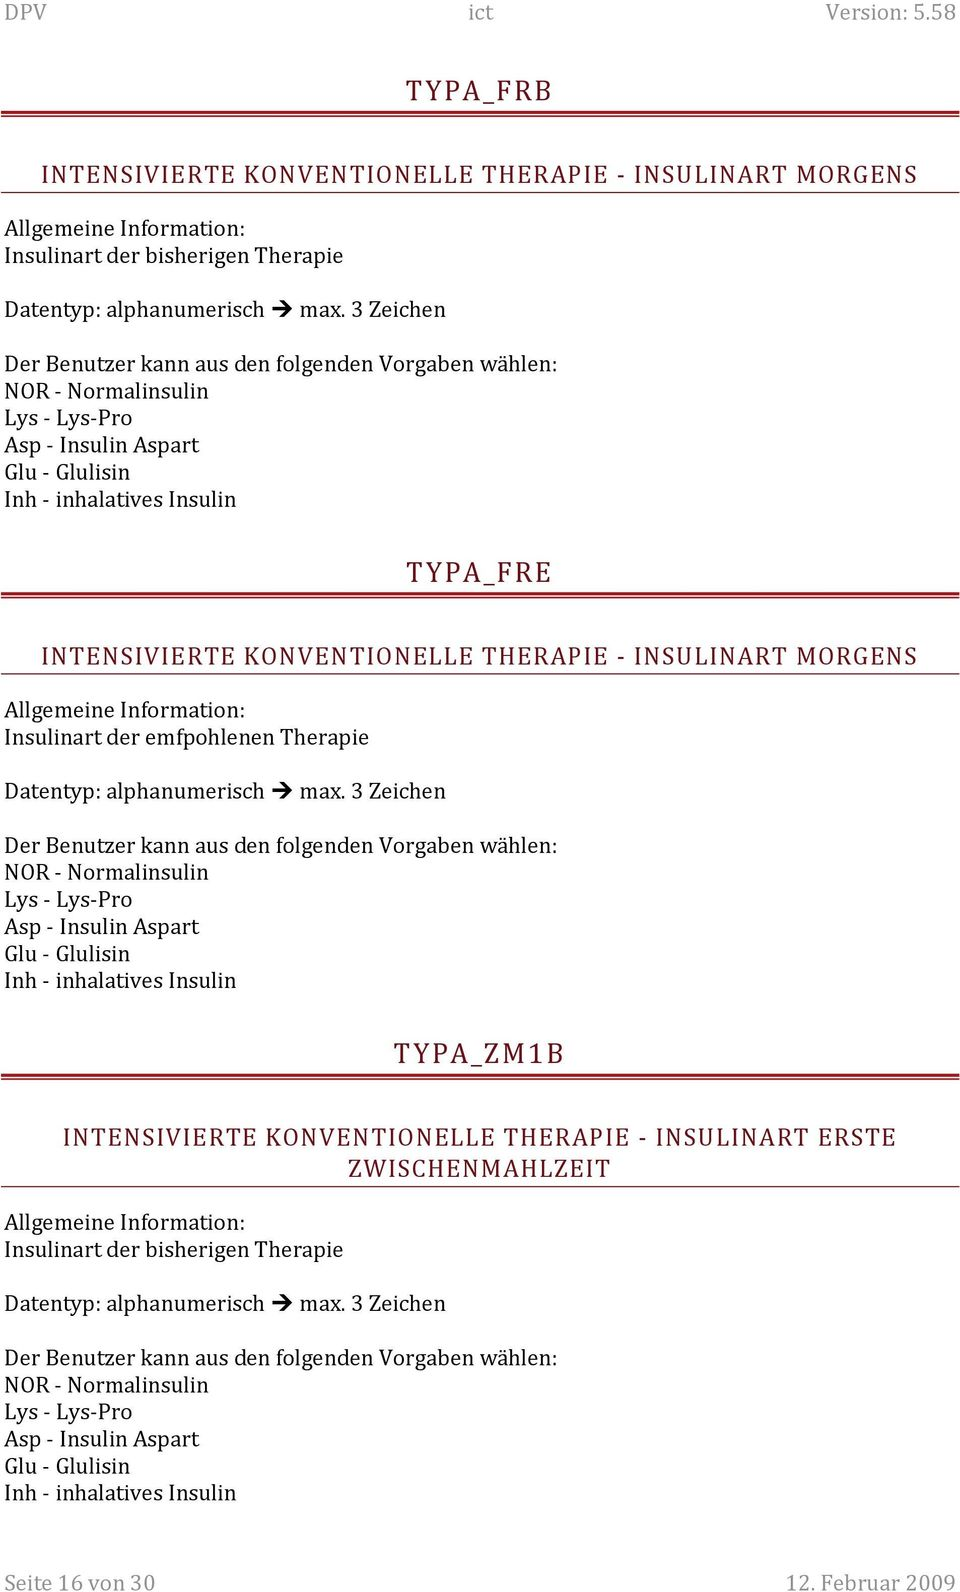 Lys - Lys-Pro Asp - Insulin Aspart Glu - Glulisin Inh - inhalatives Insulin TYPA_ZM1B INTENSIVIERTE KONVENTIONELLE THERAPIE - INSULINART ERSTE ZWISCHENMAHLZEIT